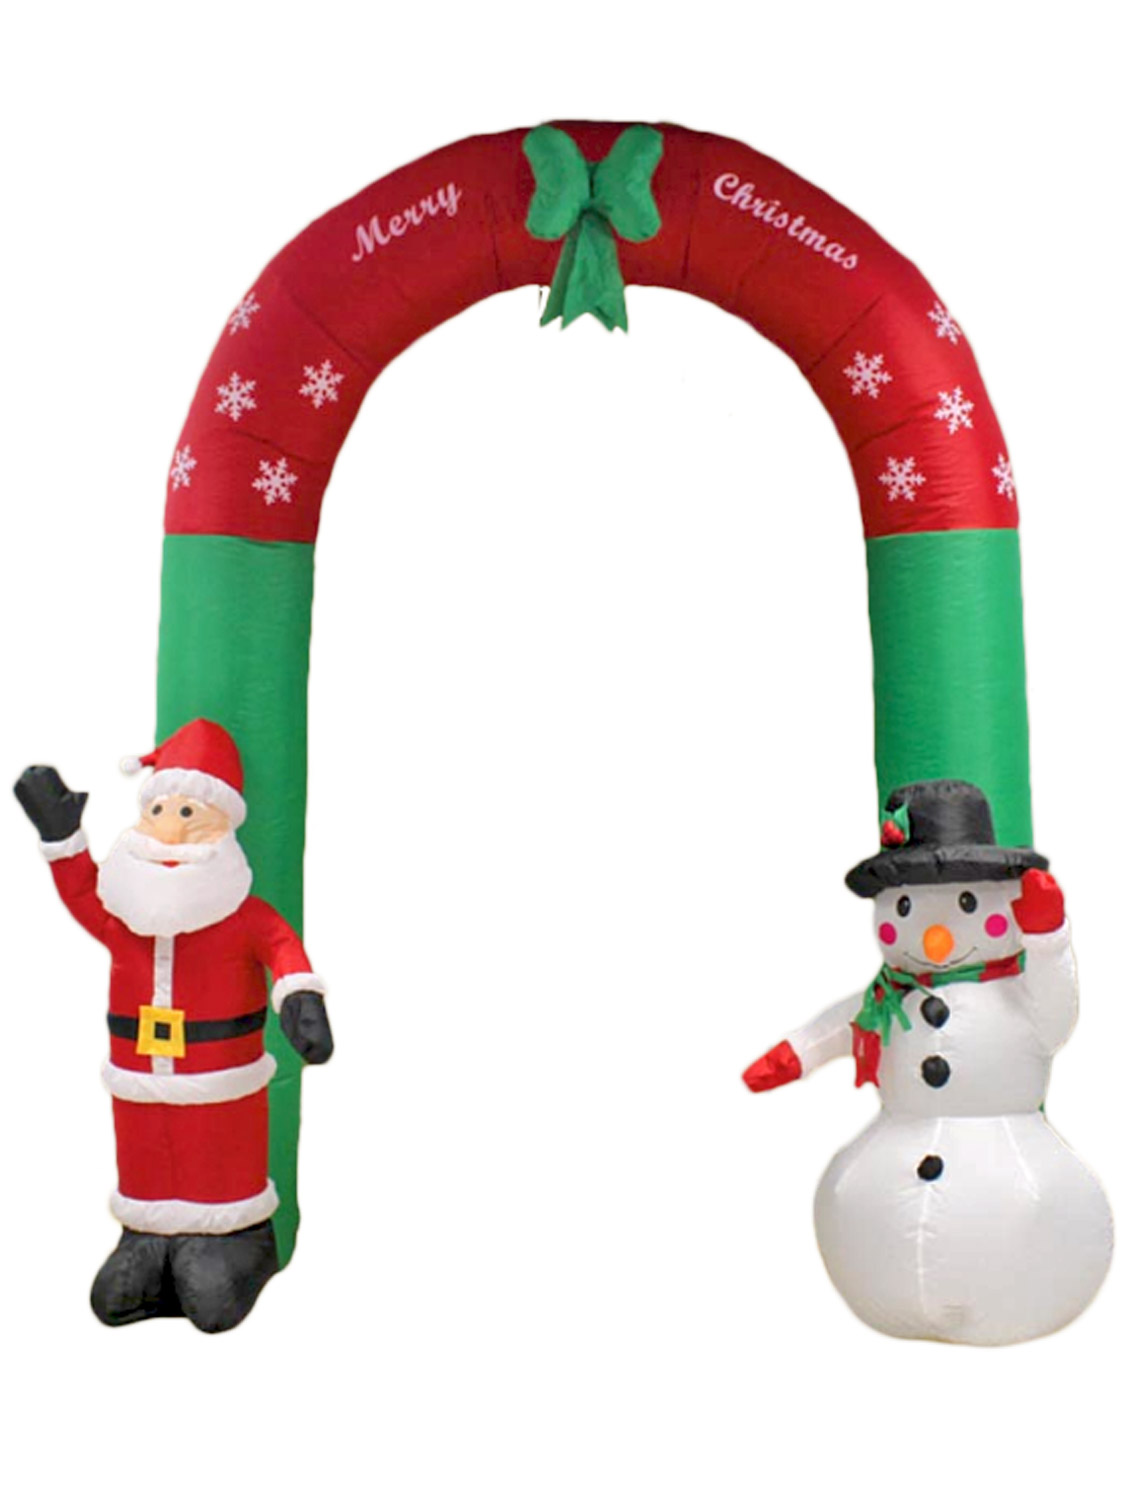 Inflatable Santa and Snowman Christmas Arch 240cm by Kingfisher | eBay